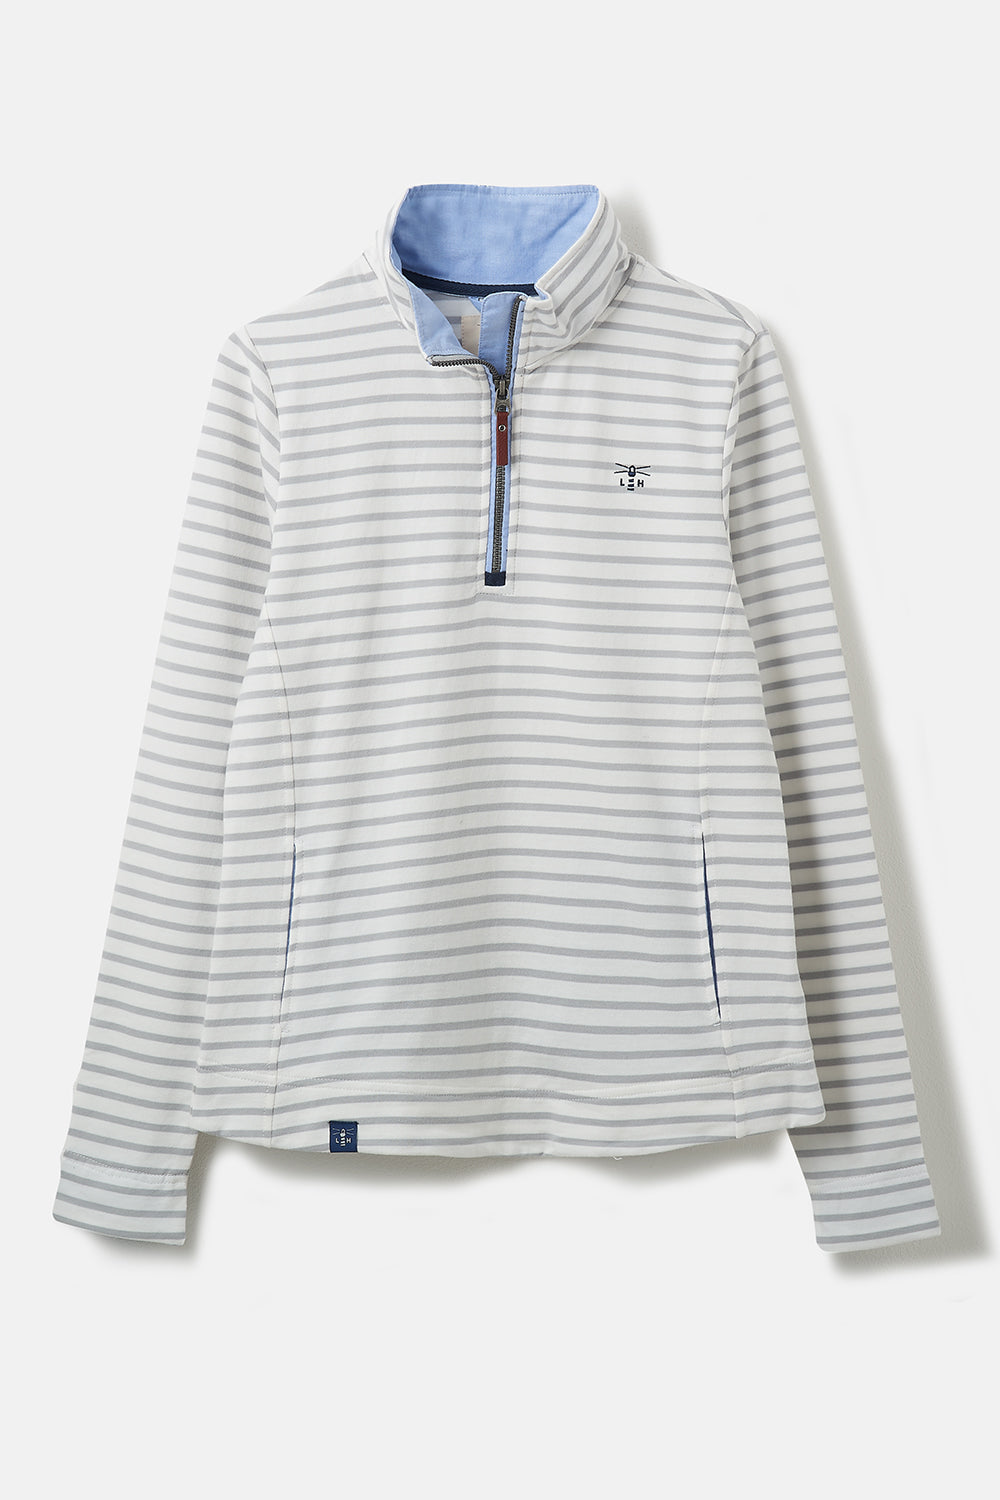 Lighthouse Women's Shore Sweatshirt Harbour Mist Stripe